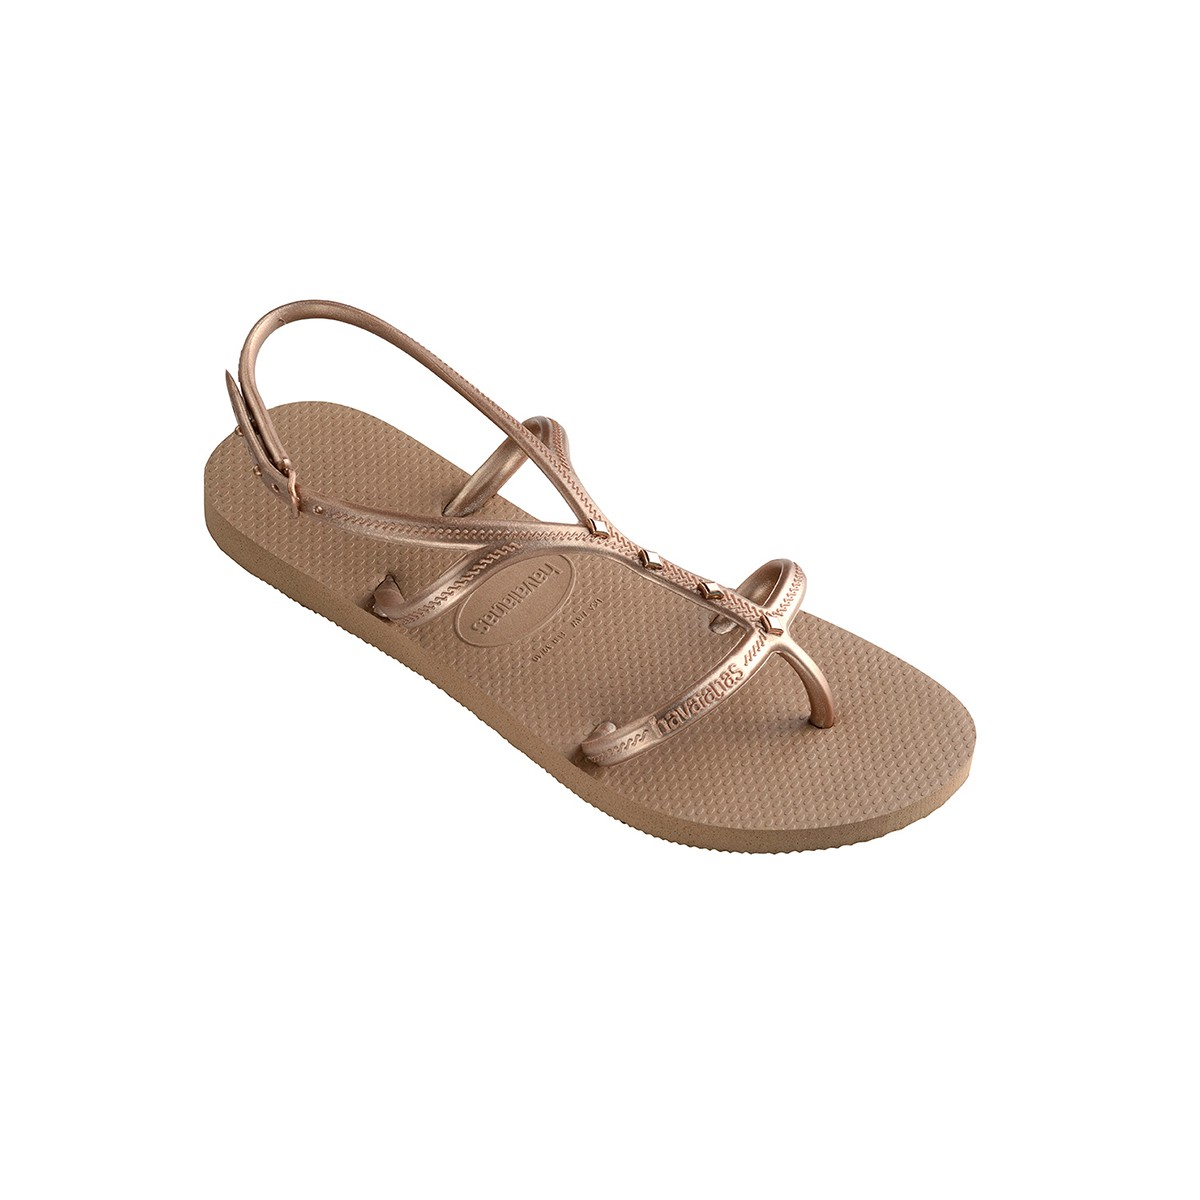 bf3aa76d0364 Havaianas Allure Maxi Sandal Rose Gold - 11 12